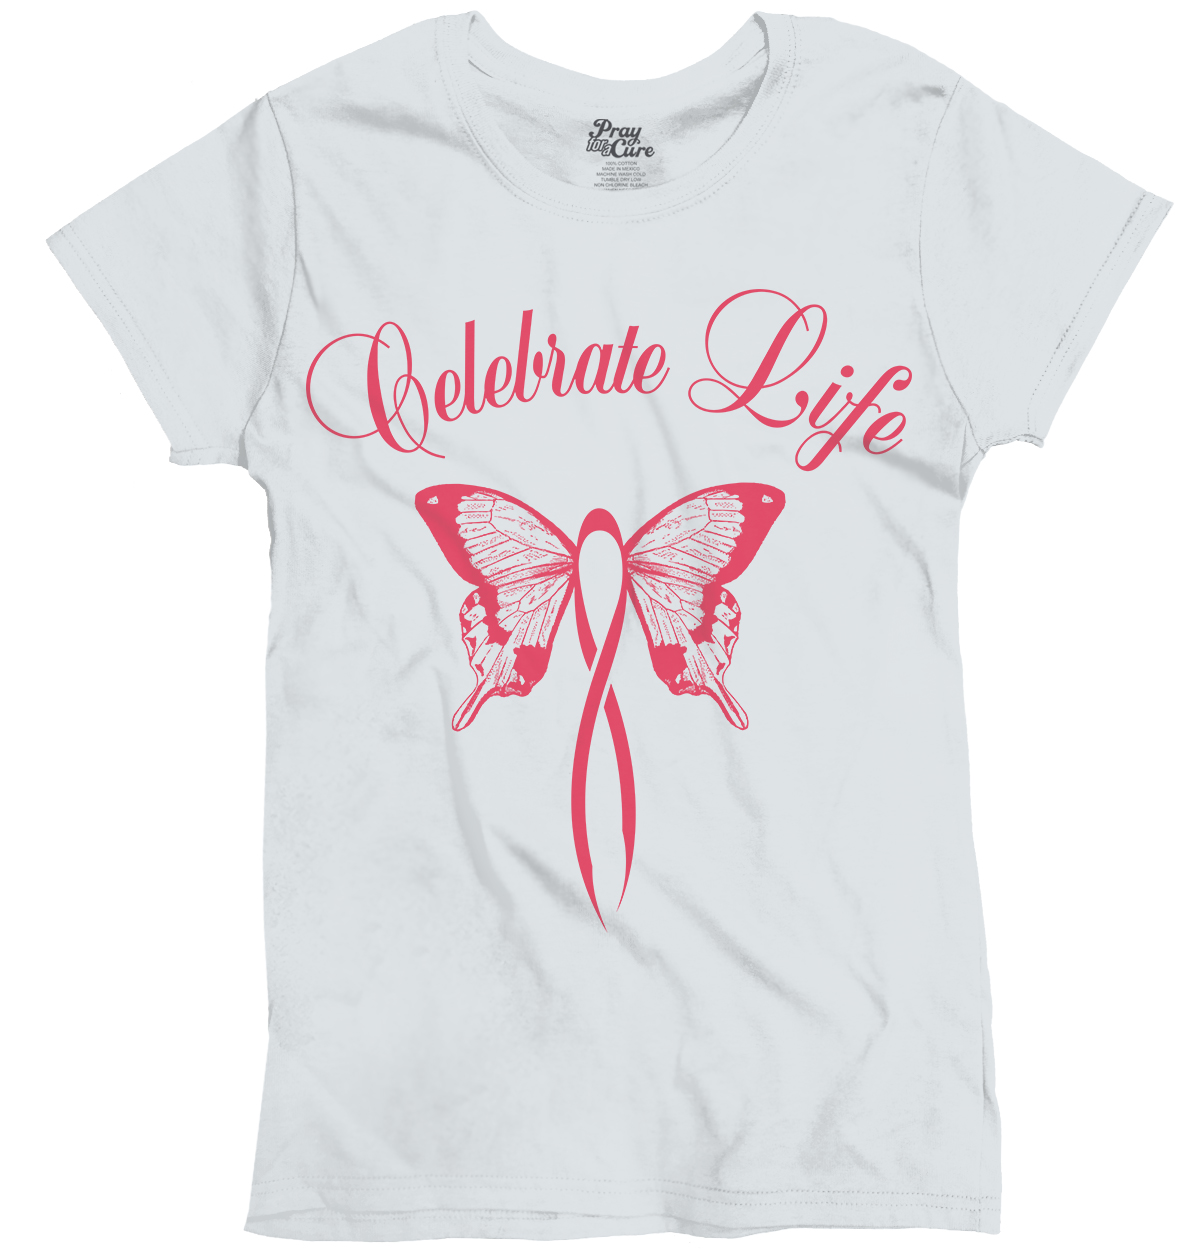 Breast Cancer Awareness Women's T Shirt Pink Celebrate Life Butterfly Ribbon Tee by Pray For A Cure